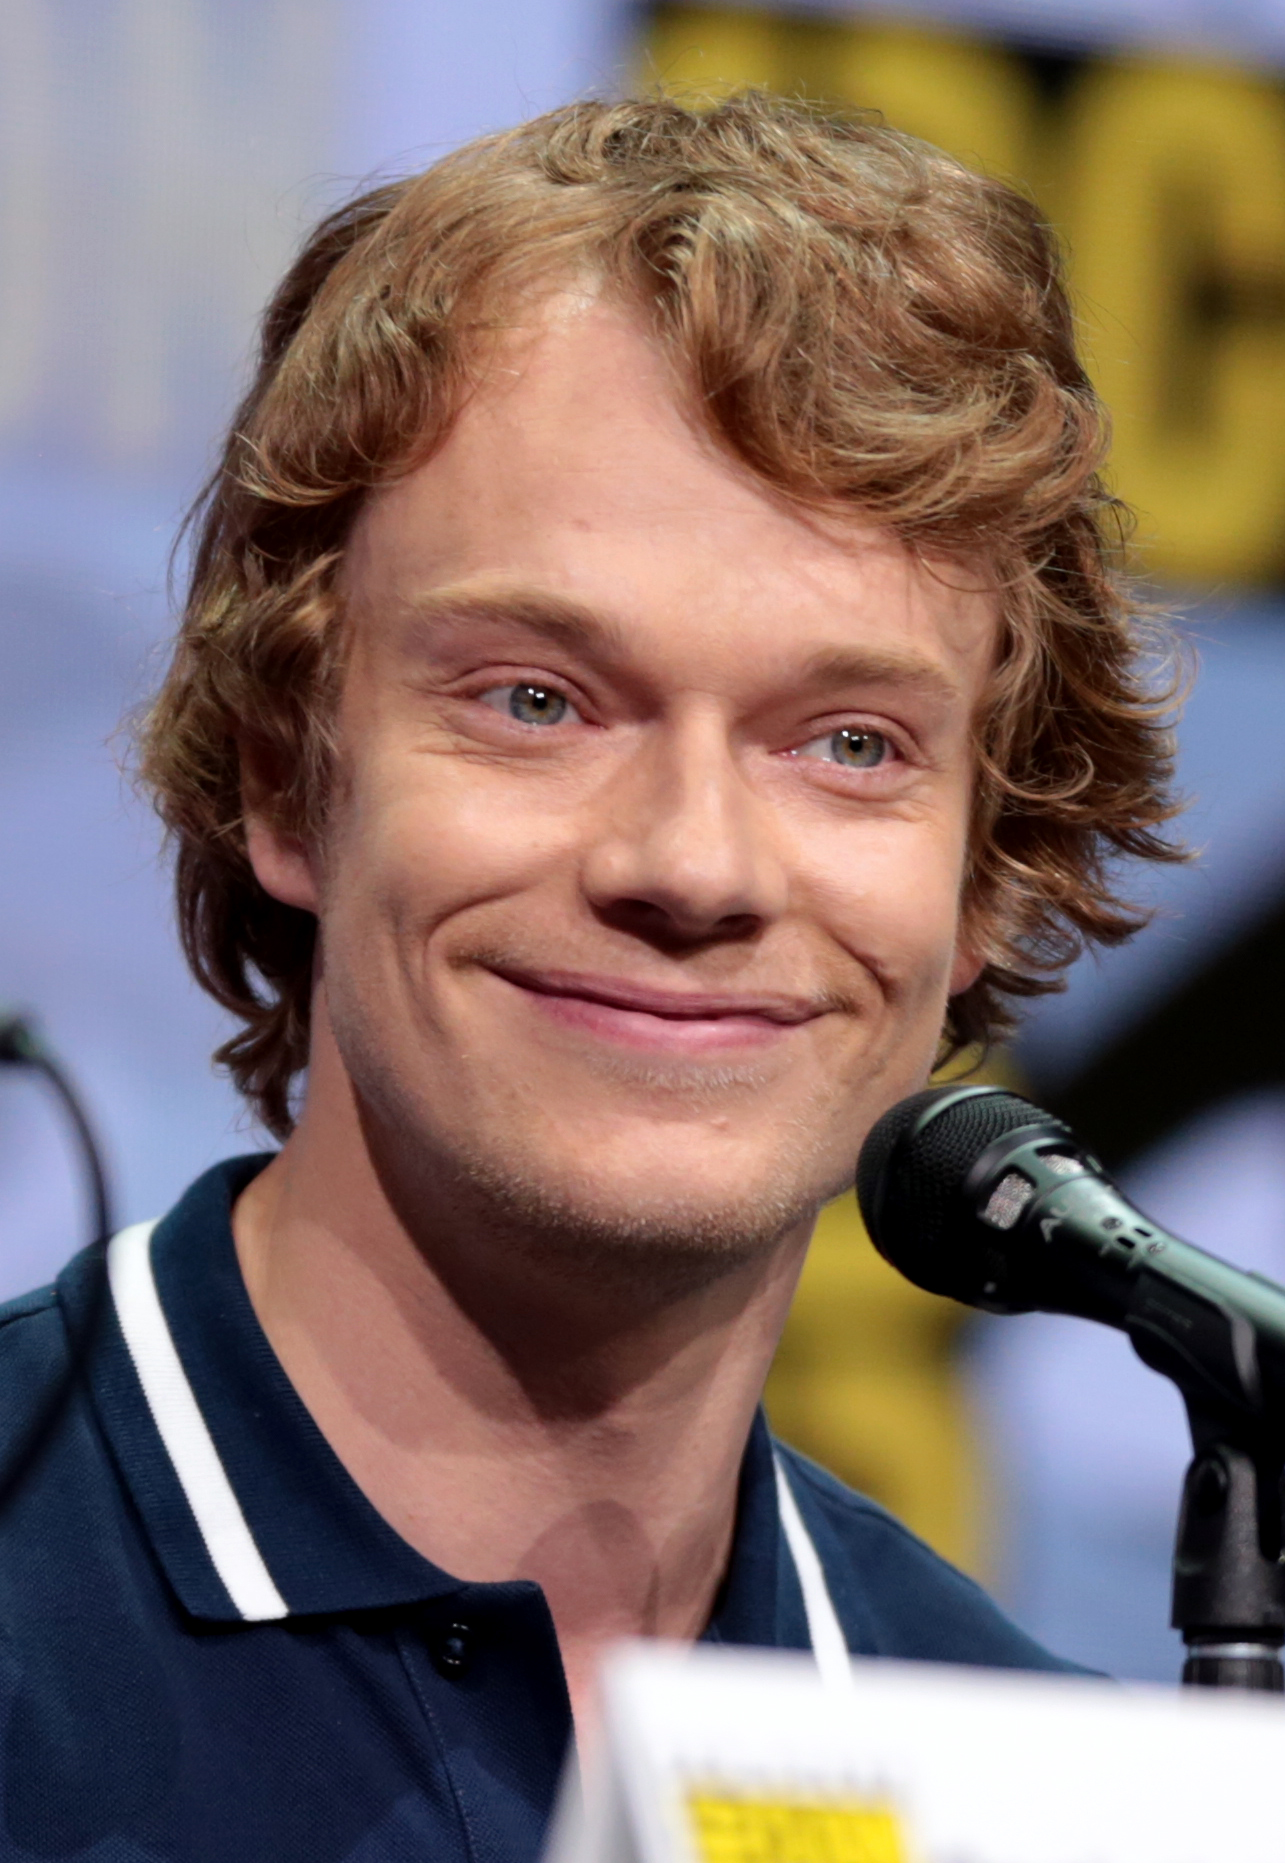 The 31-year old son of father  Keith Allen and mother Alison Owen  Alfie Allen in 2018 photo. Alfie Allen earned a  million dollar salary - leaving the net worth at 2.1 million in 2018